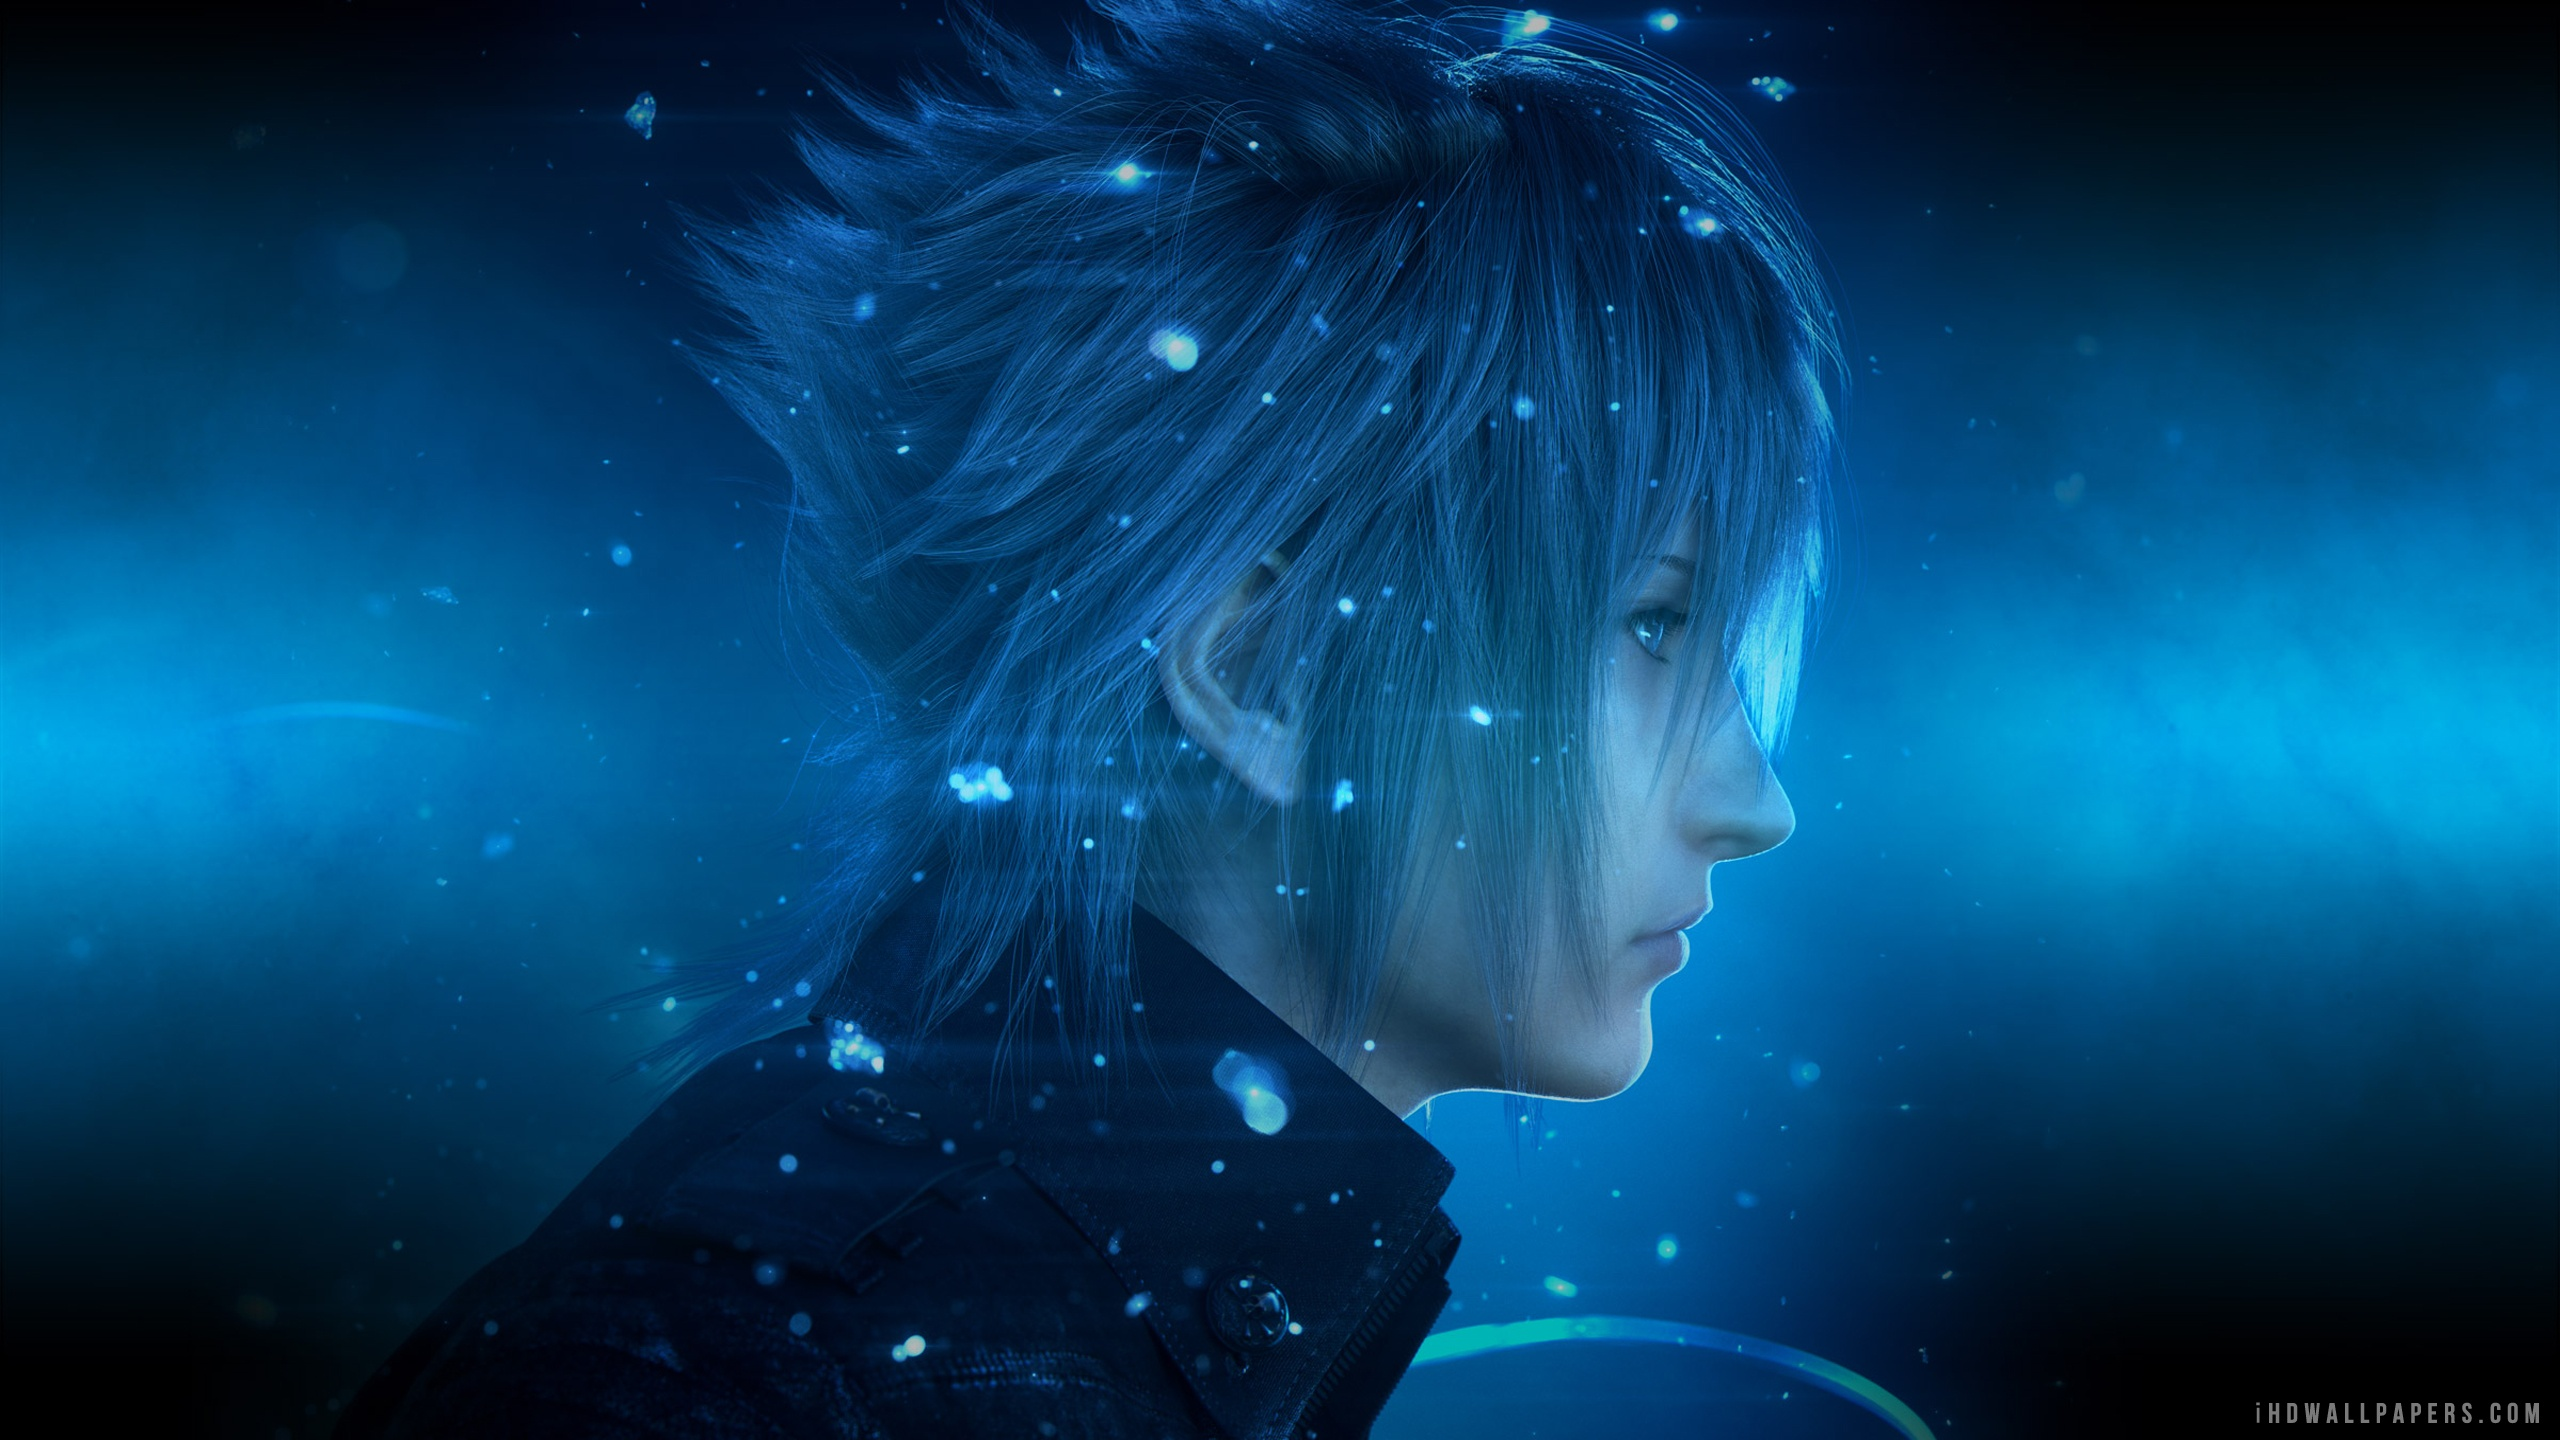 117 Final Fantasy Xv Hd Wallpapers: Final Fantasy XV HD Wallpapers Free Download